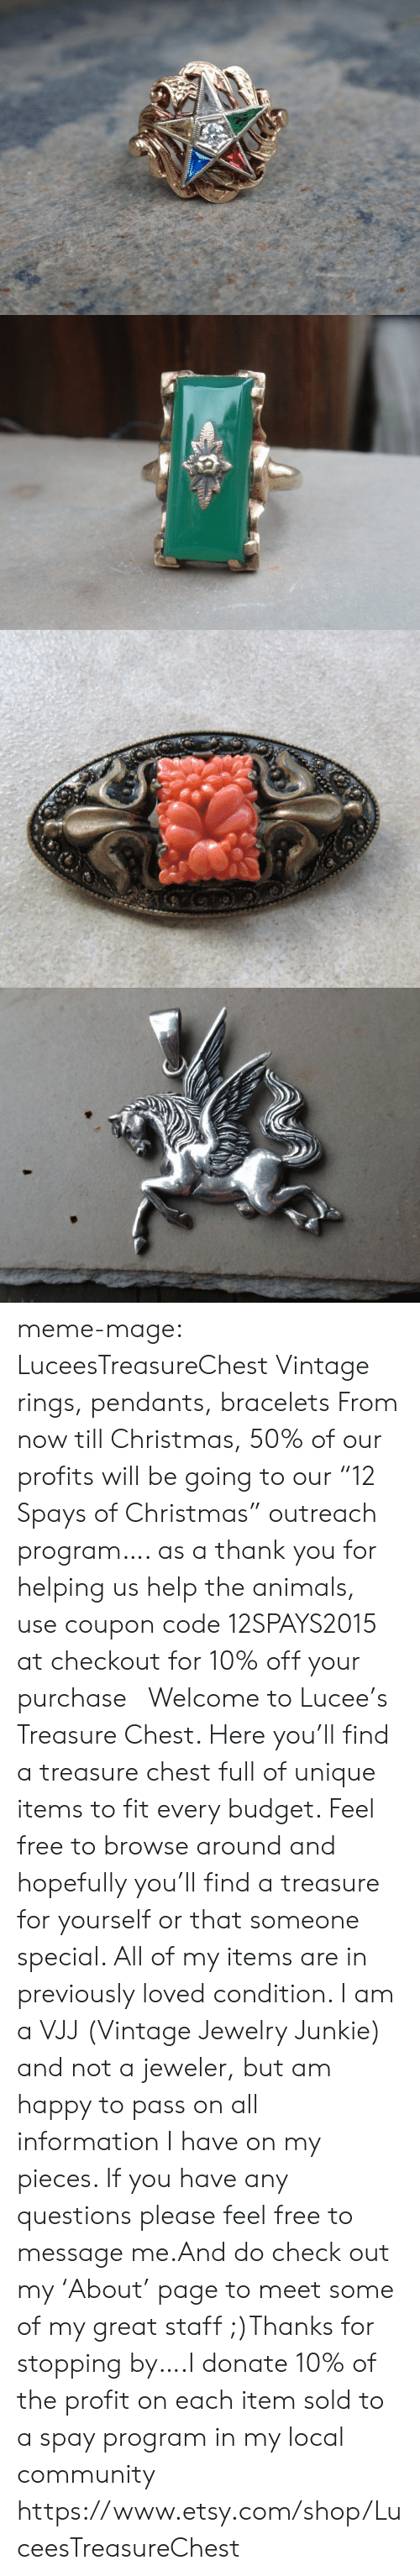 "Animals, Christmas, and Community: meme-mage:  LuceesTreasureChest Vintage rings, pendants, bracelets   From now till Christmas, 50% of our profits will be going to our ""12 Spays of Christmas"" outreach program…. as a thank you for helping us help the animals, use coupon code 12SPAYS2015 at checkout for 10% off your purchase Welcome to Lucee's Treasure Chest. Here you'll find a treasure chest full of unique items to fit every budget. Feel free to browse around and hopefully you'll find a treasure for yourself or that someone special. All of my items are in previously loved condition. I am a VJJ (Vintage Jewelry Junkie) and not a jeweler, but am happy to pass on all information I have on my pieces. If you have any questions please feel free to message me.And do check out my 'About' page to meet some of my great staff ;)Thanks for stopping by….I donate 10% of the profit on each item sold to a spay program in my local community   https://www.etsy.com/shop/LuceesTreasureChest"